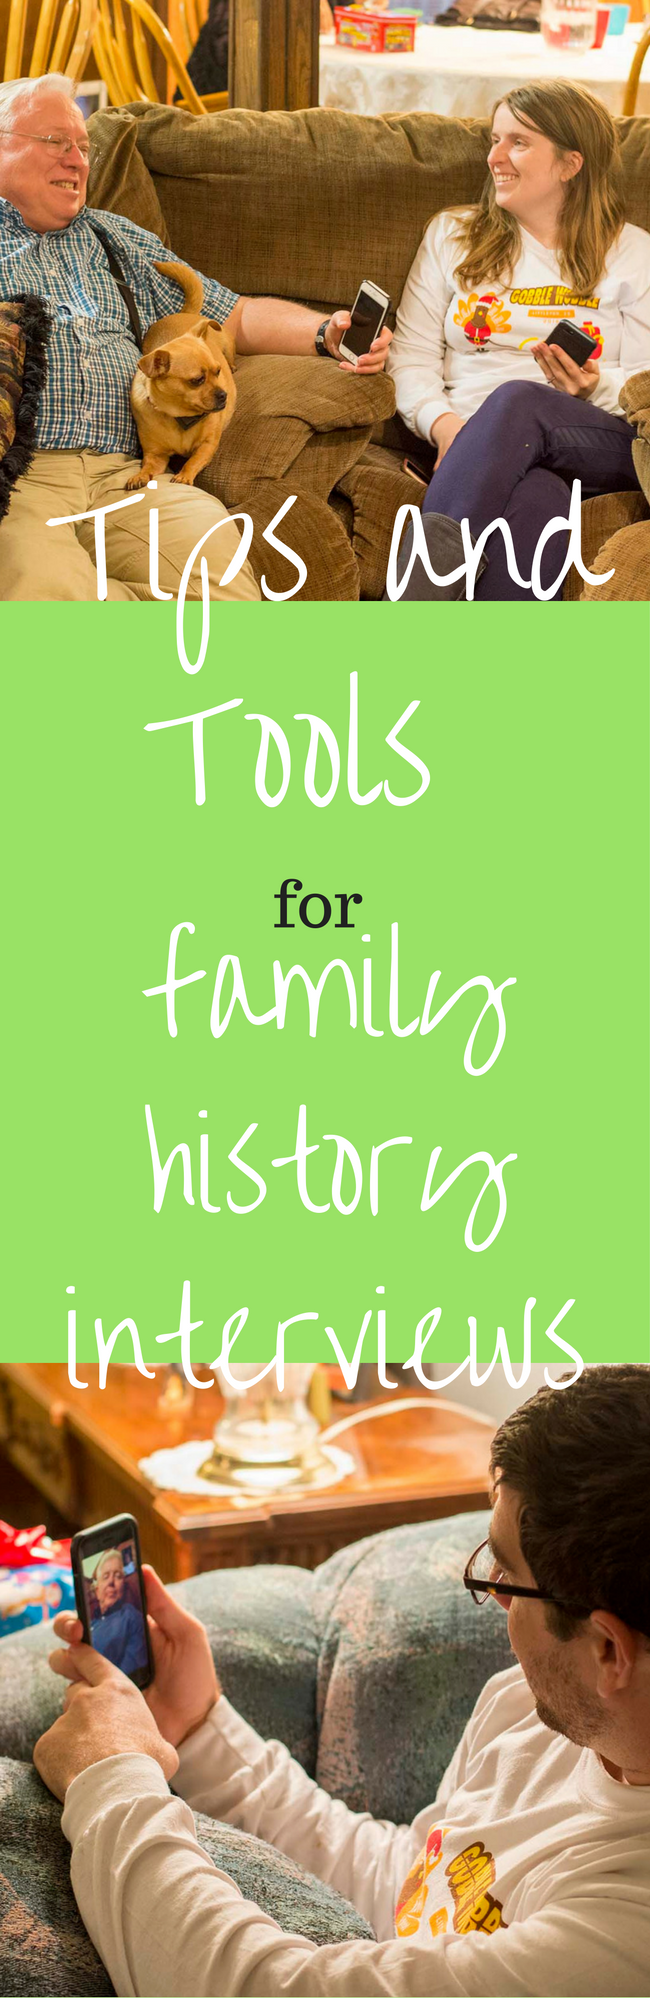 If you are looking for some family history ideas, read on! Organizing family history interviews with family members is a great way to preserve their Geneology. It's a great project for adults and youth to participate in. via @clarkscondensed